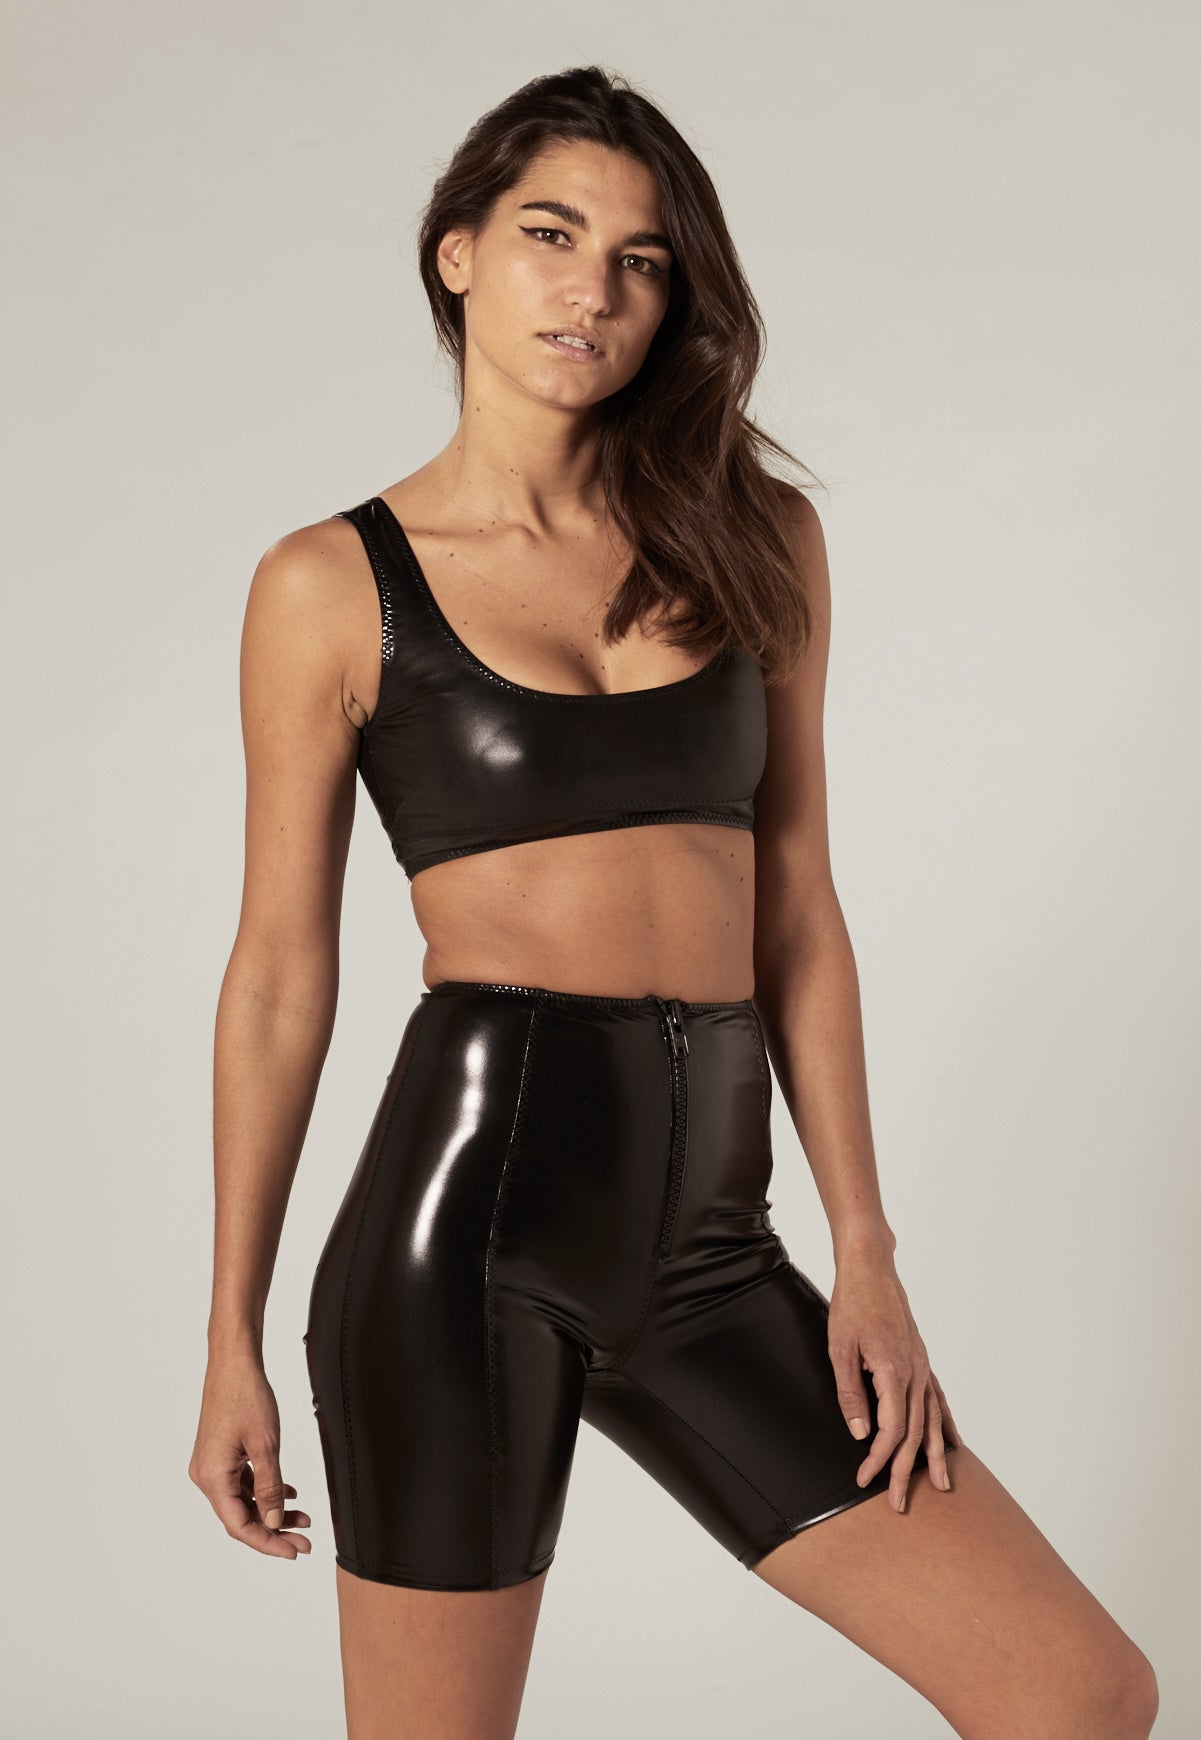 ZANI BLACK PVC TOP